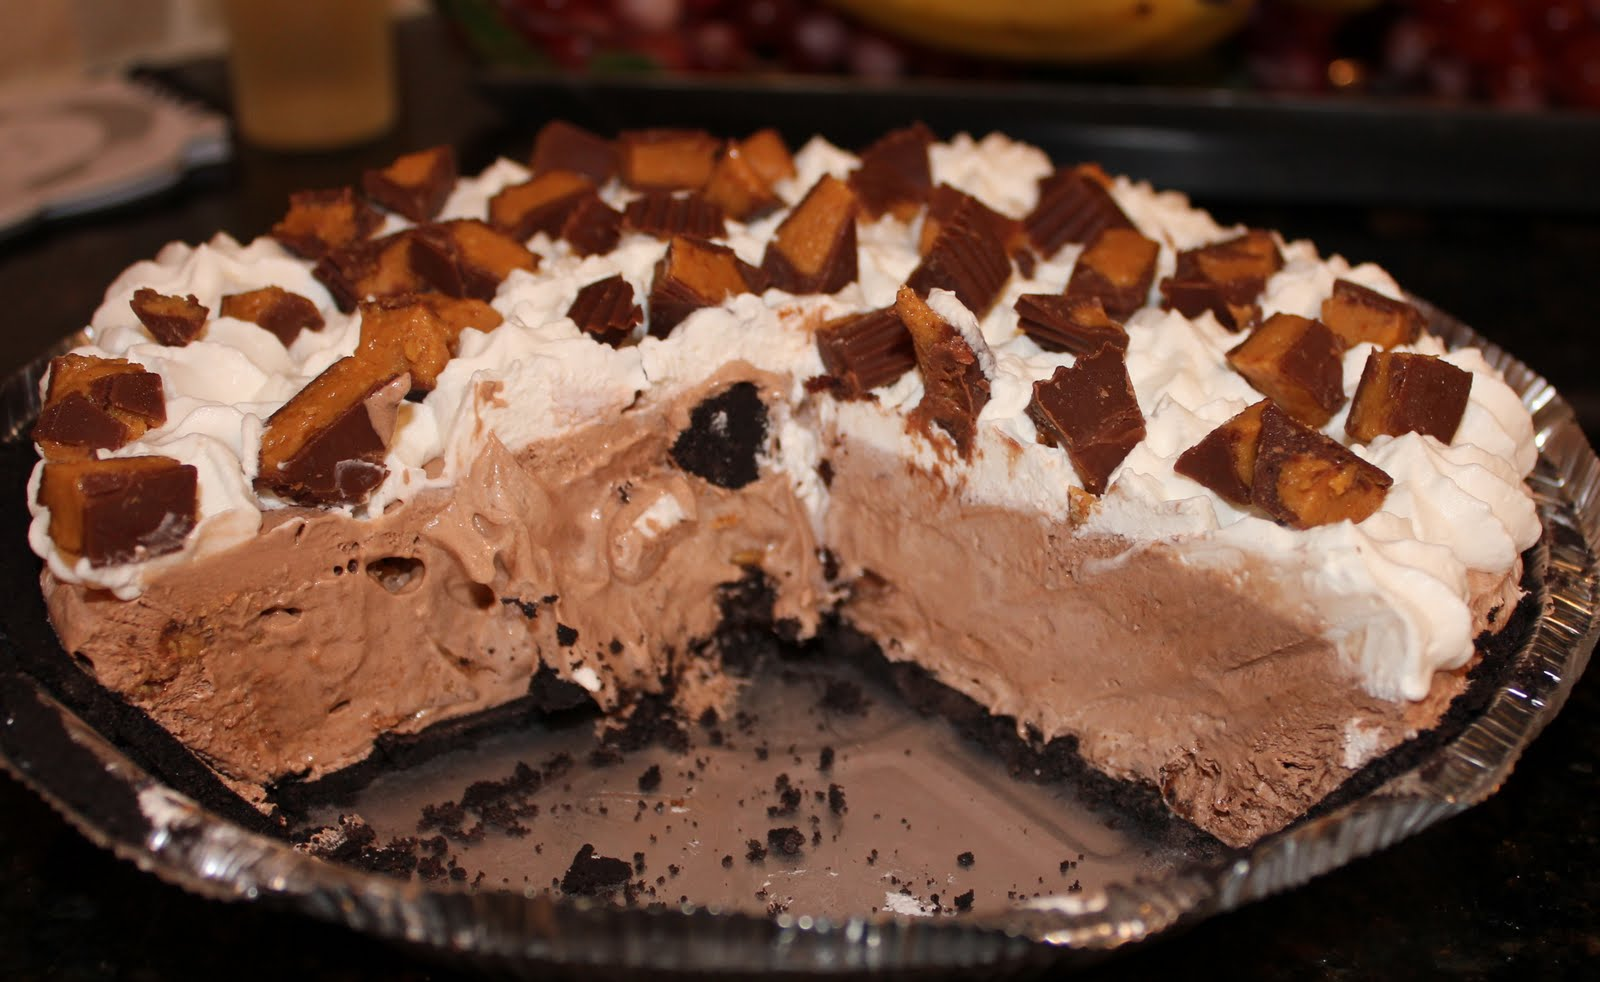 Reese's Peanut Butter Cup Pie – Dallas Duo Bakes